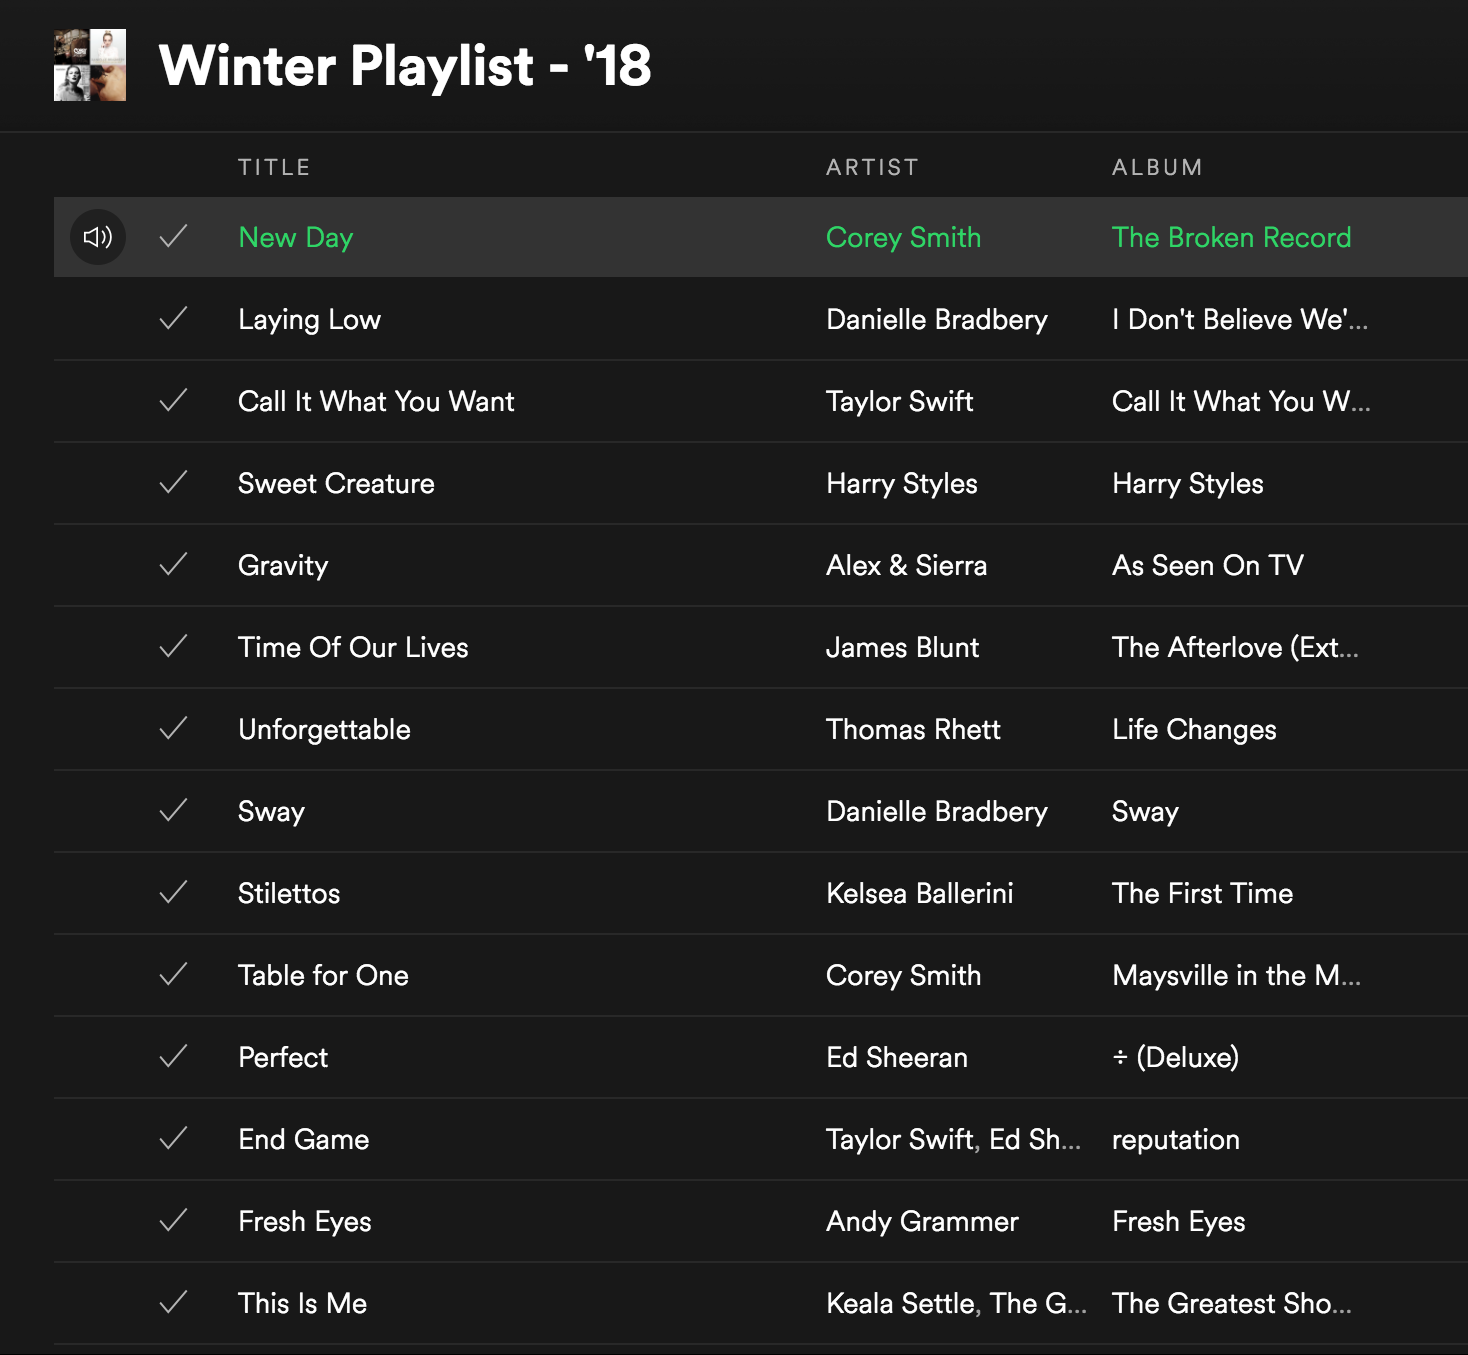 My Winter Playlist - '18 | love 'n' labels www.lovenlabels.com